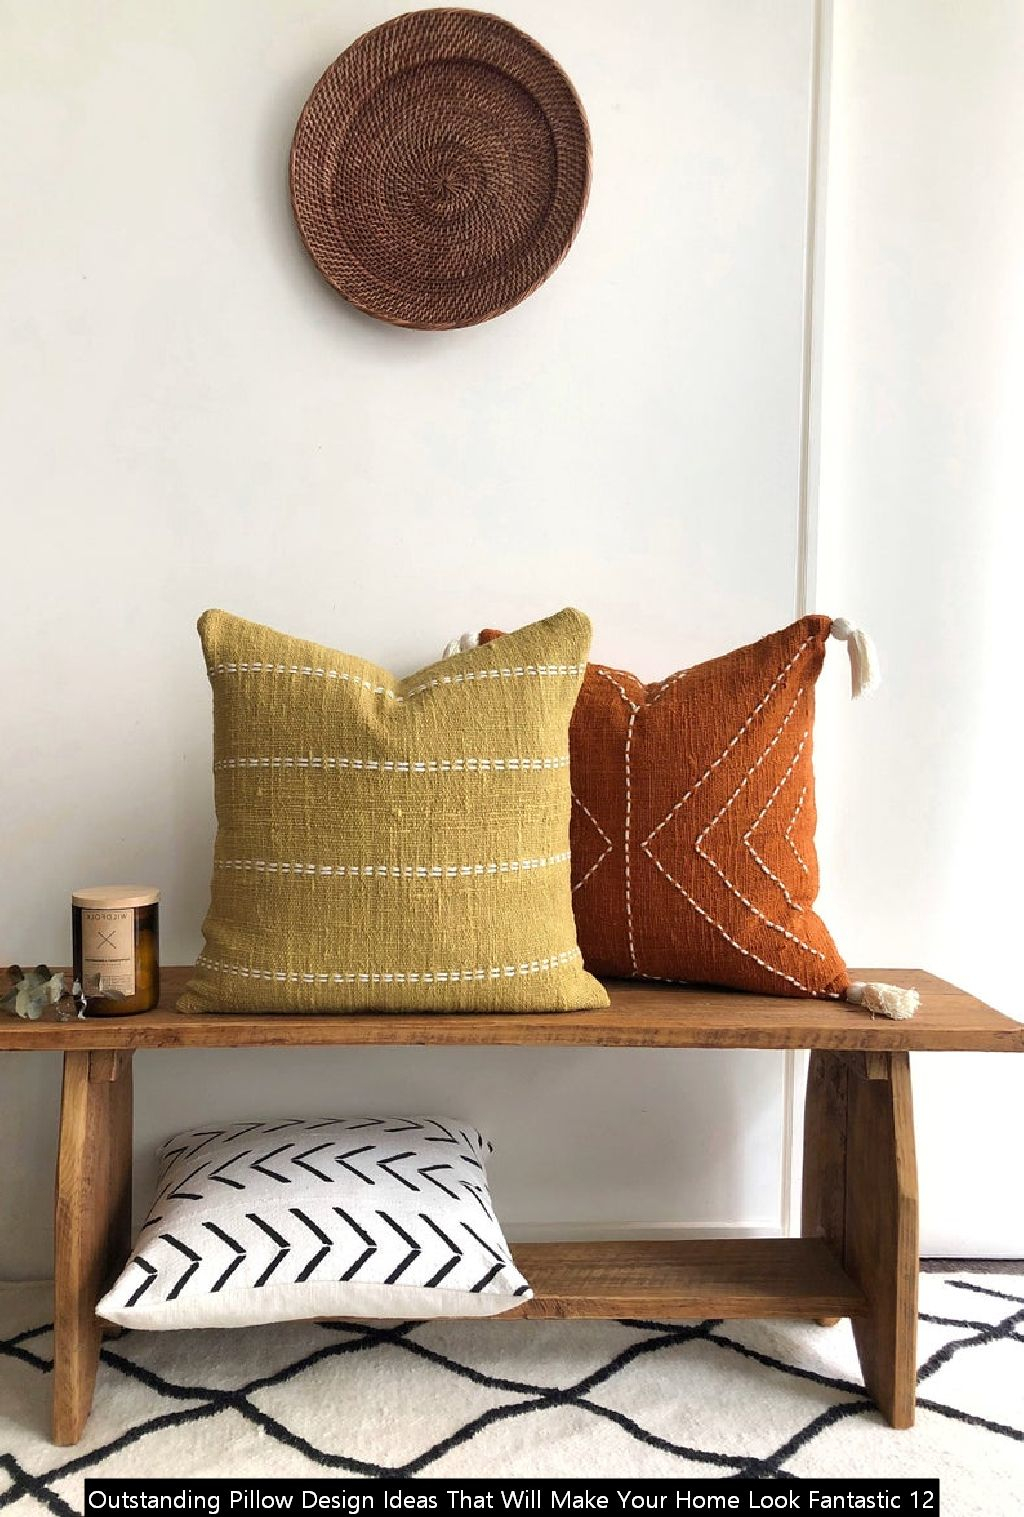 Outstanding Pillow Design Ideas That Will Make Your Home Look Fantastic 12